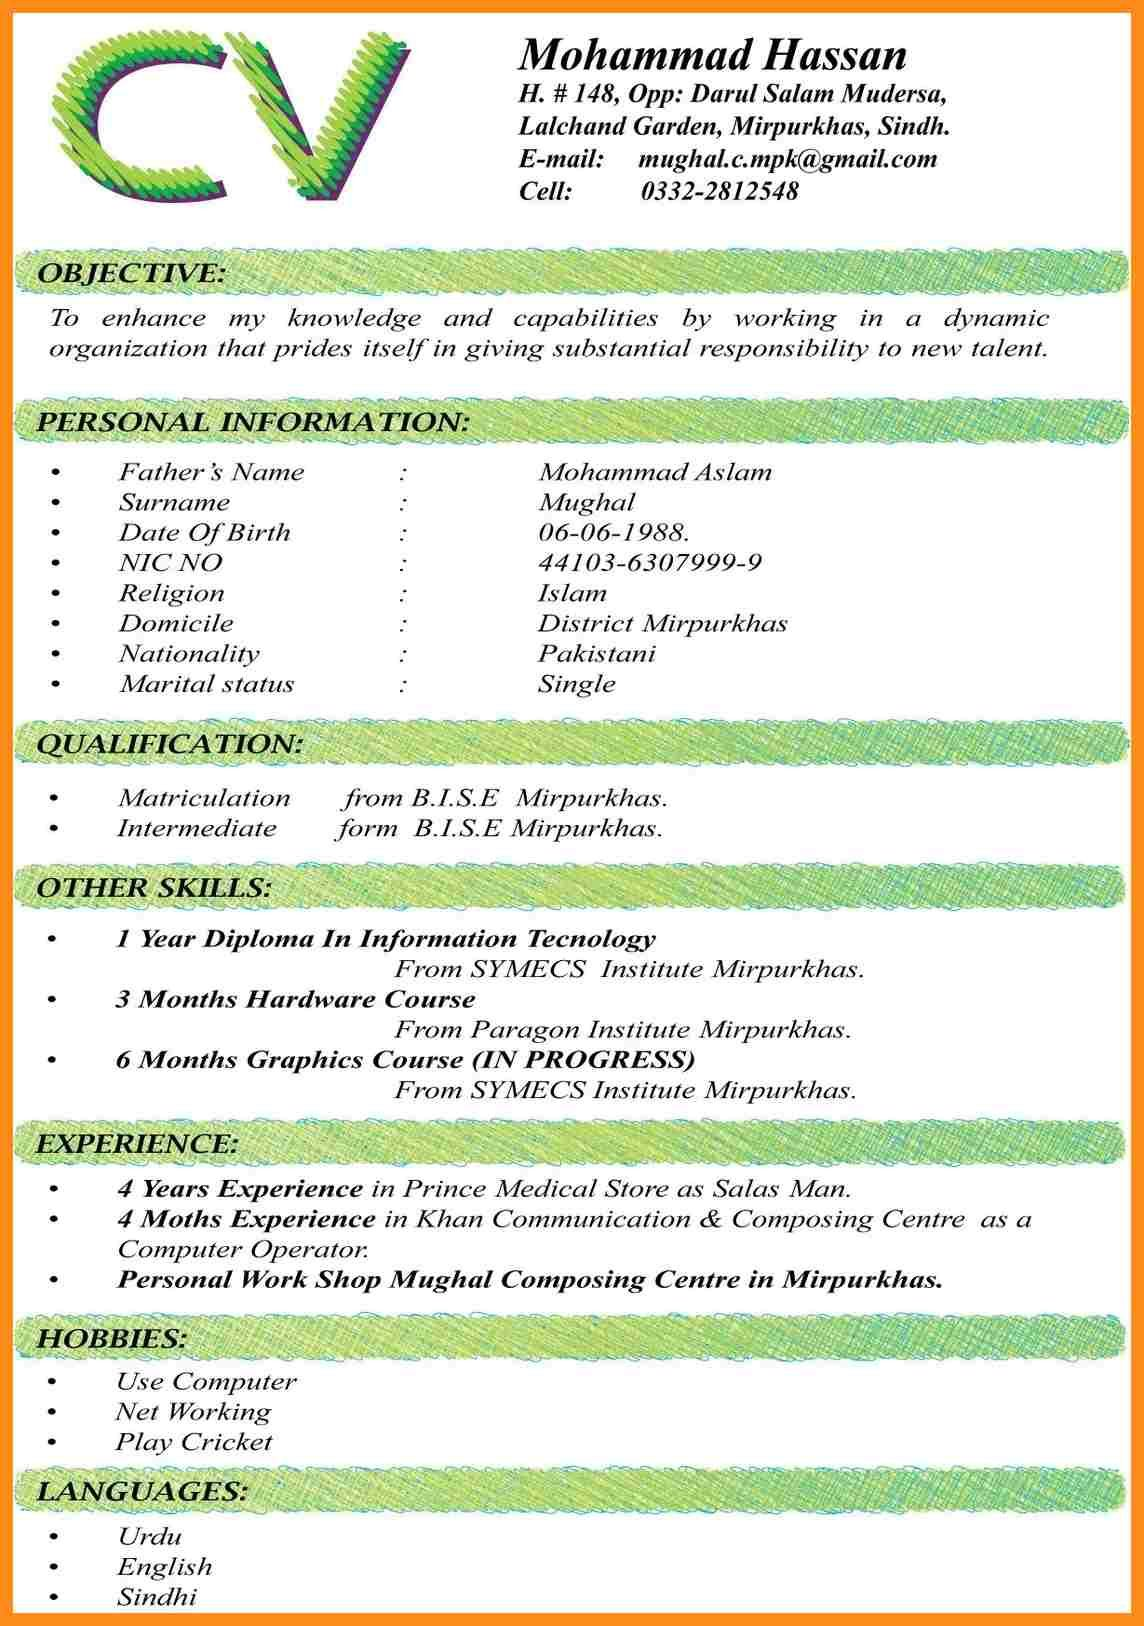 job cv format download pdf 8 standard cv format pdf resume setups